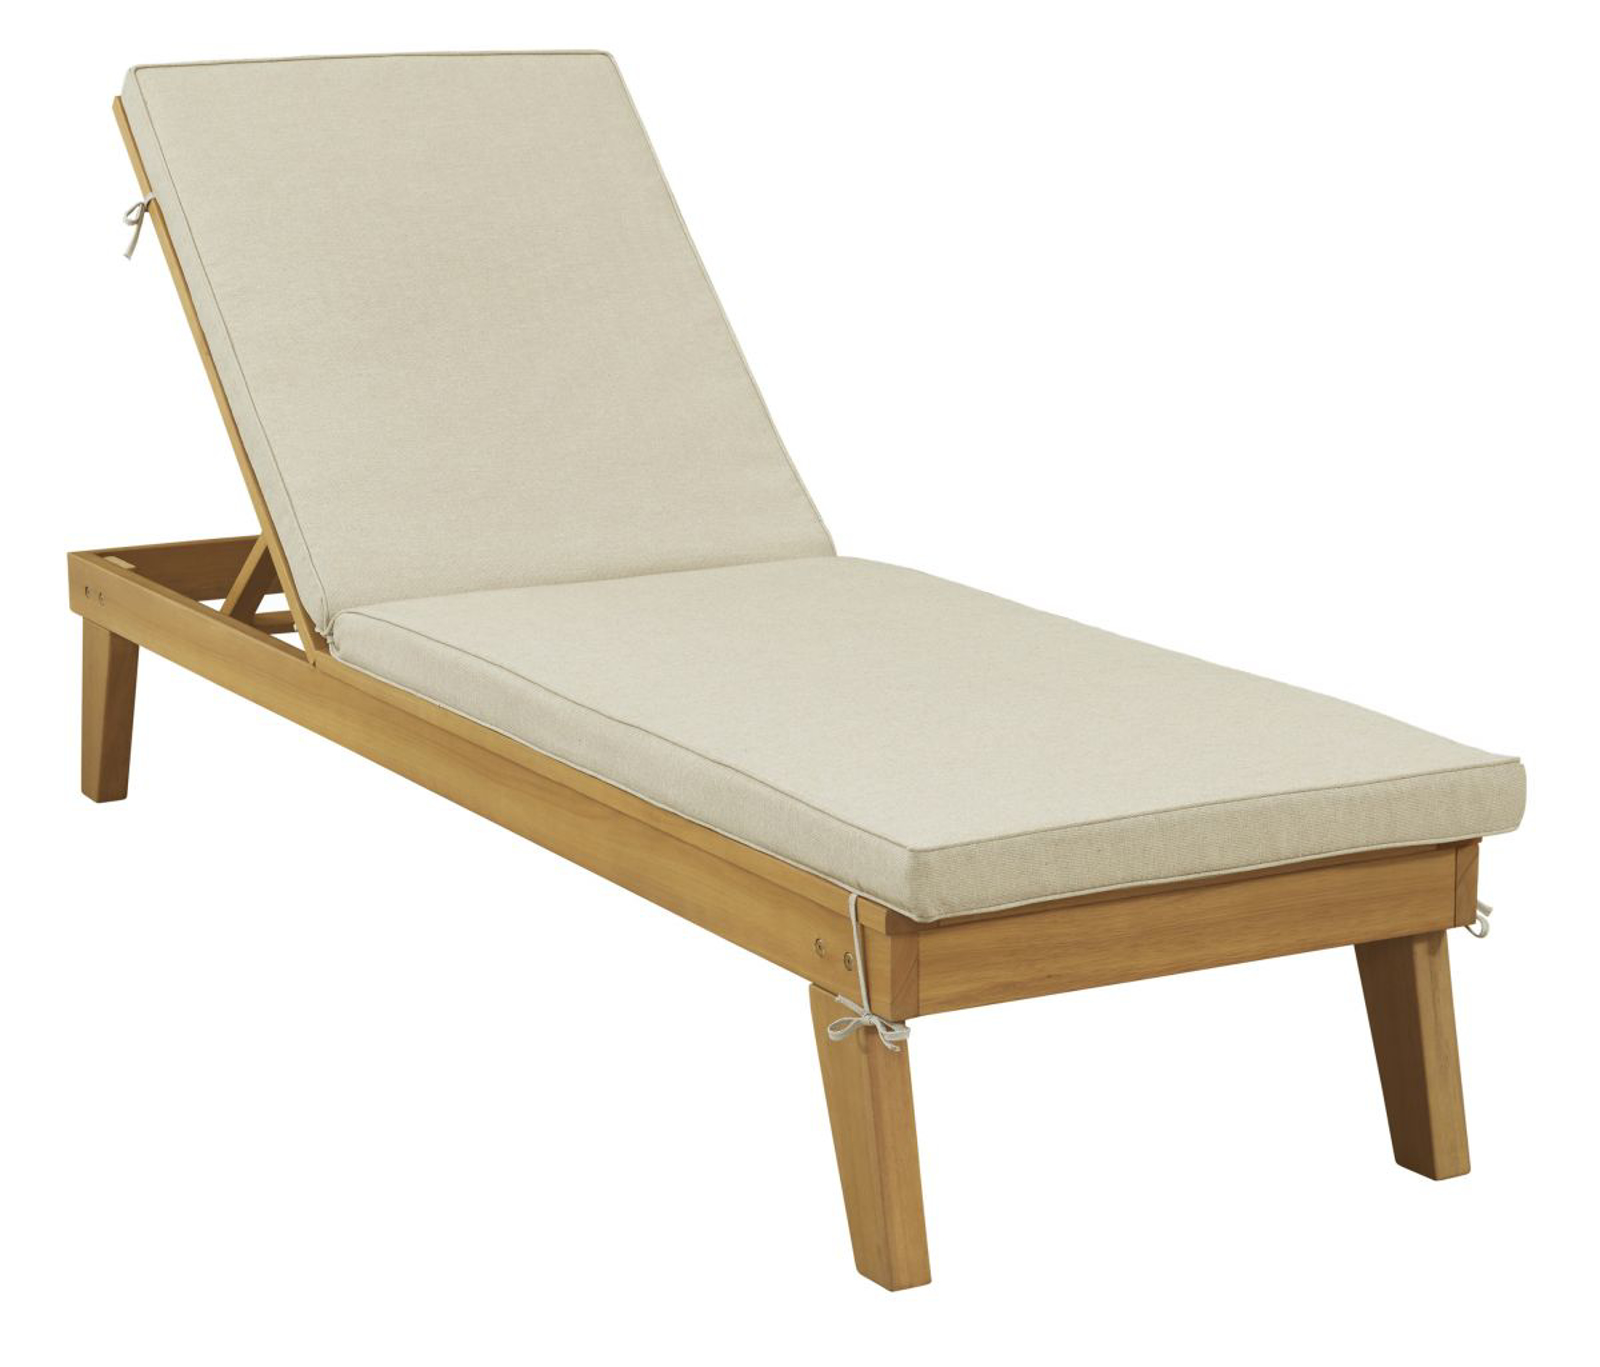 Picture of Byron Bay Patio Chaise Lounge